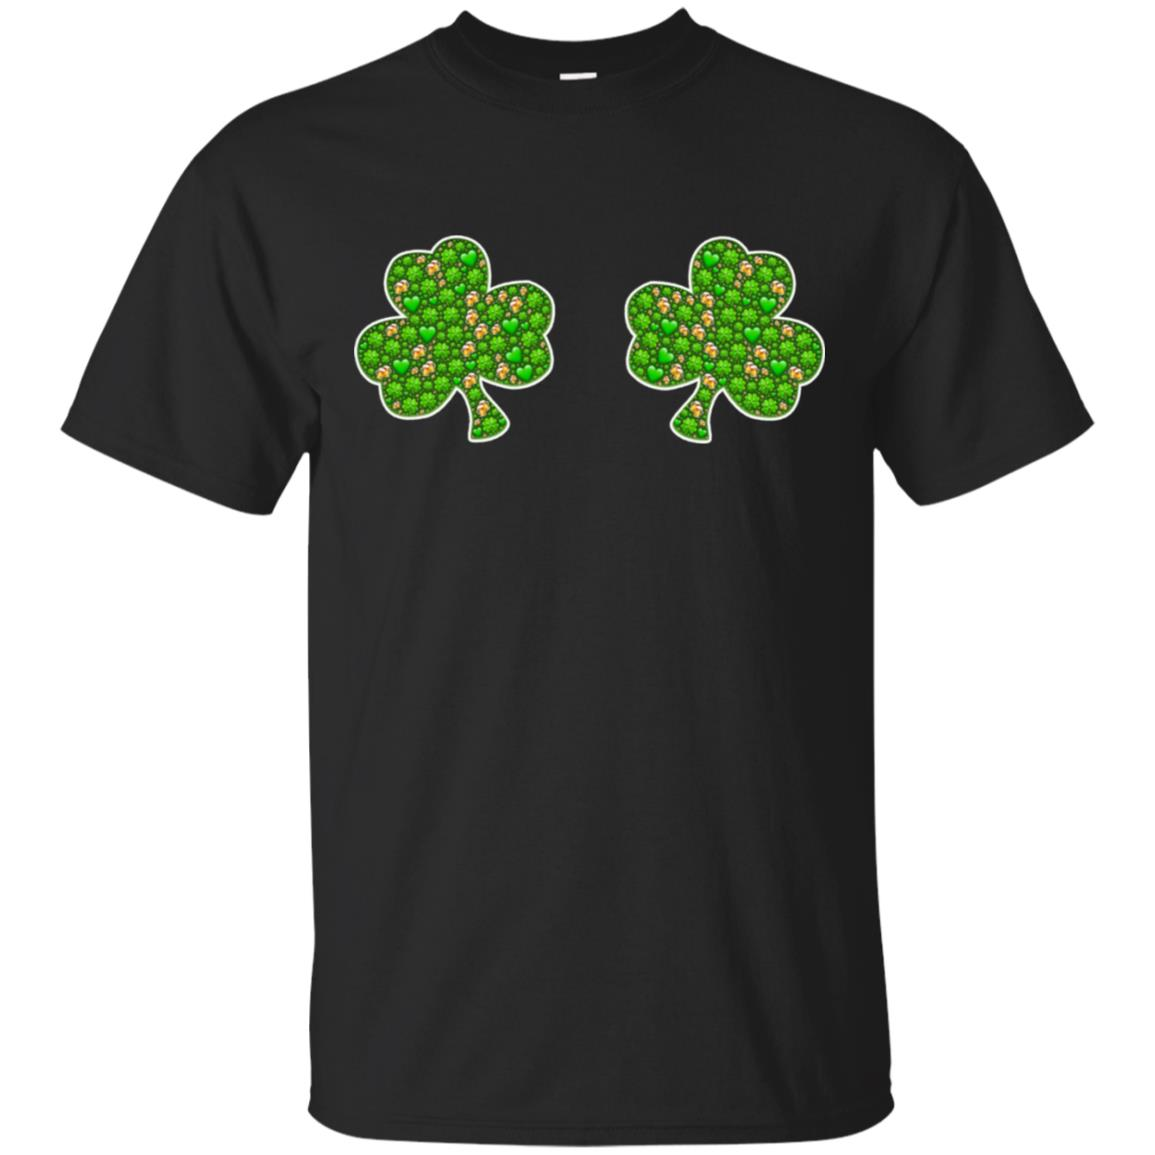 St. Patrick's Day Shirt Women Funny Shamrock Boobies Boobs 99promocode